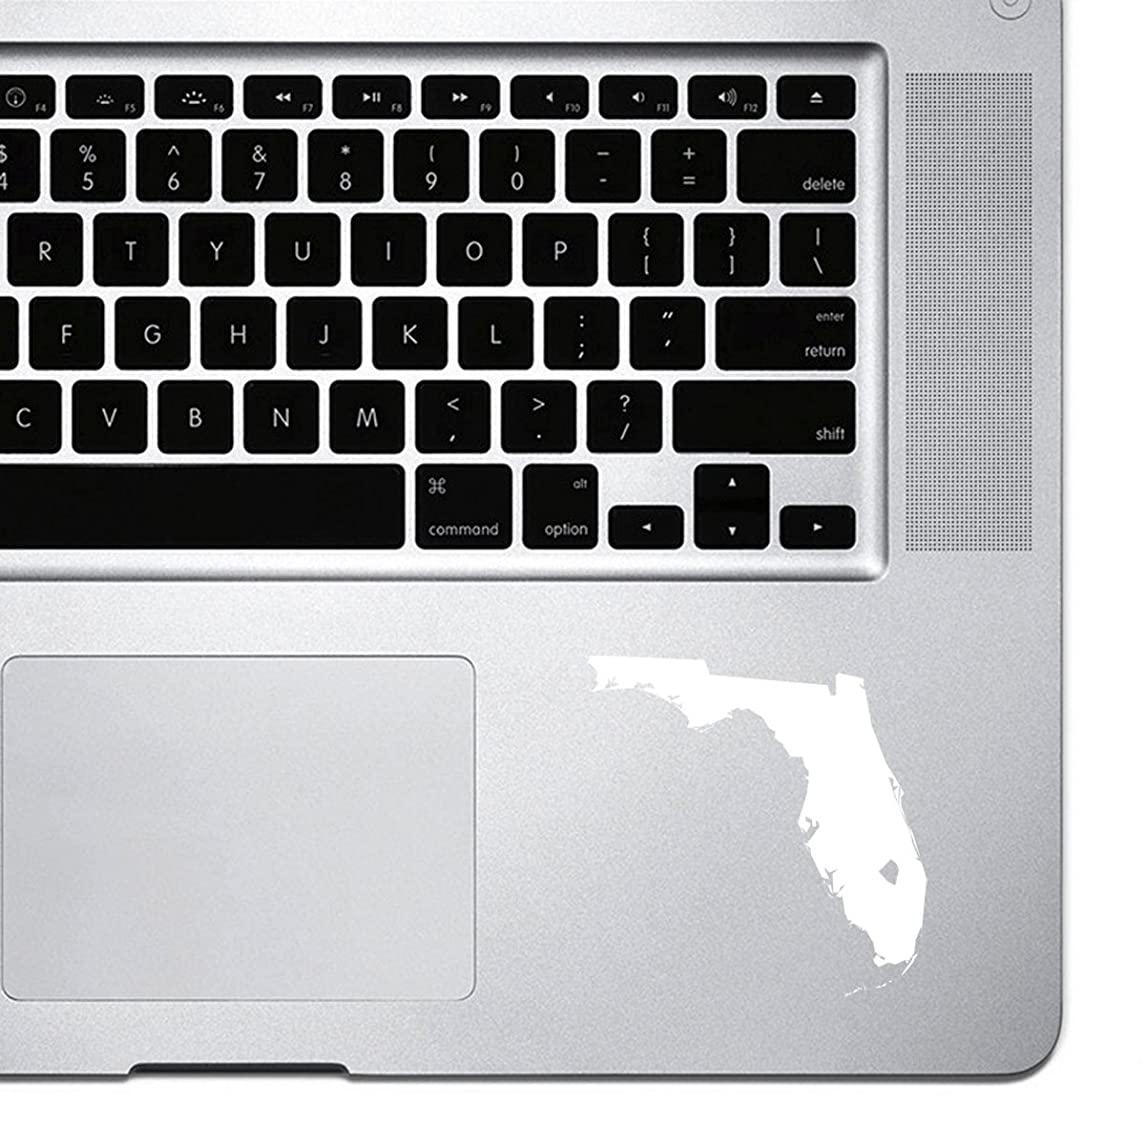 StickAny Palm Series Florida FL Sticker for Macbook Pro, Chromebook, and Laptops (White)